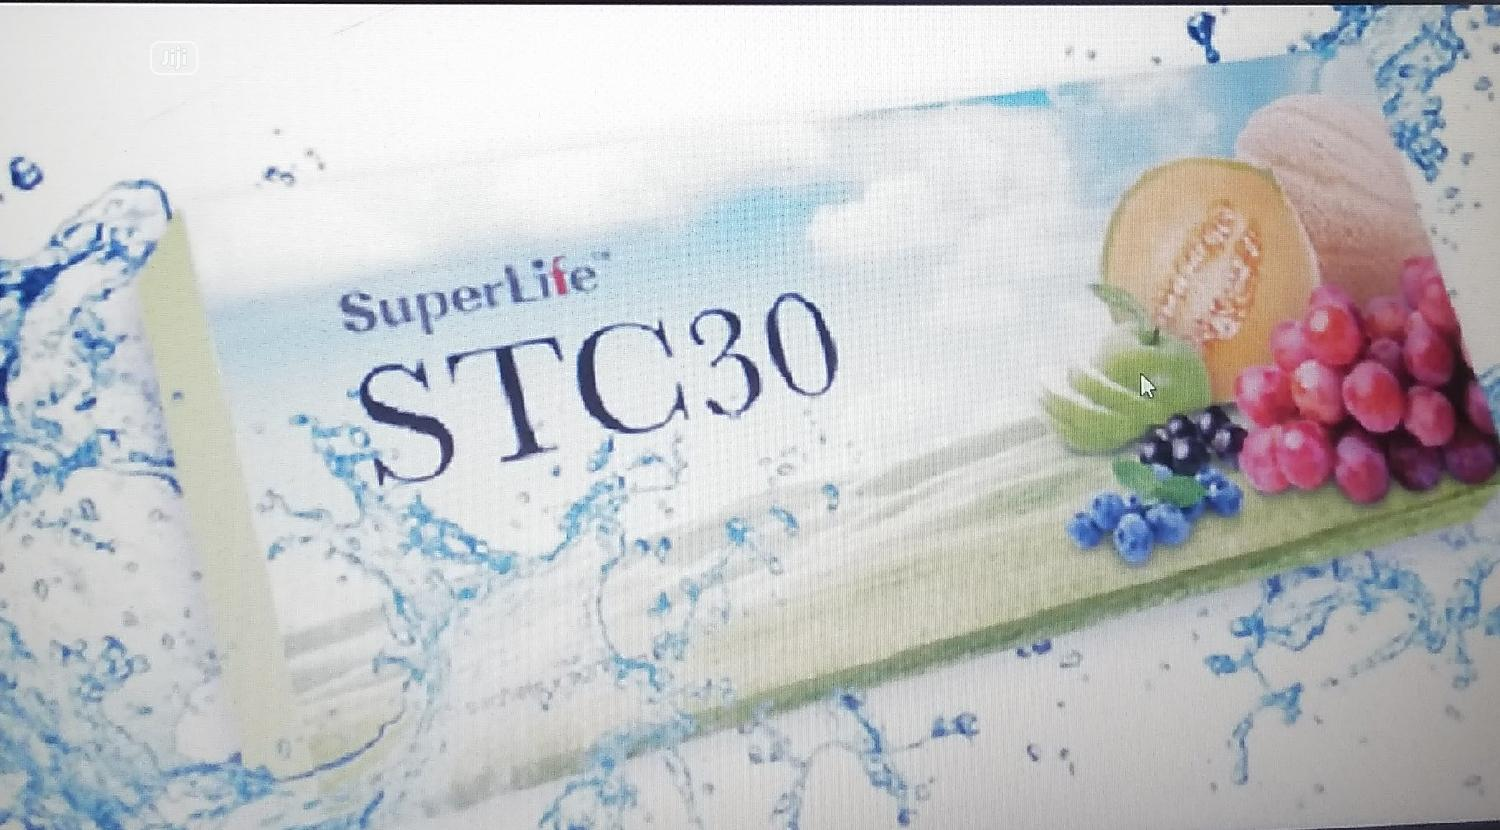 Archive: Superlife STC 30 For High Blood Pressure And Diabetes